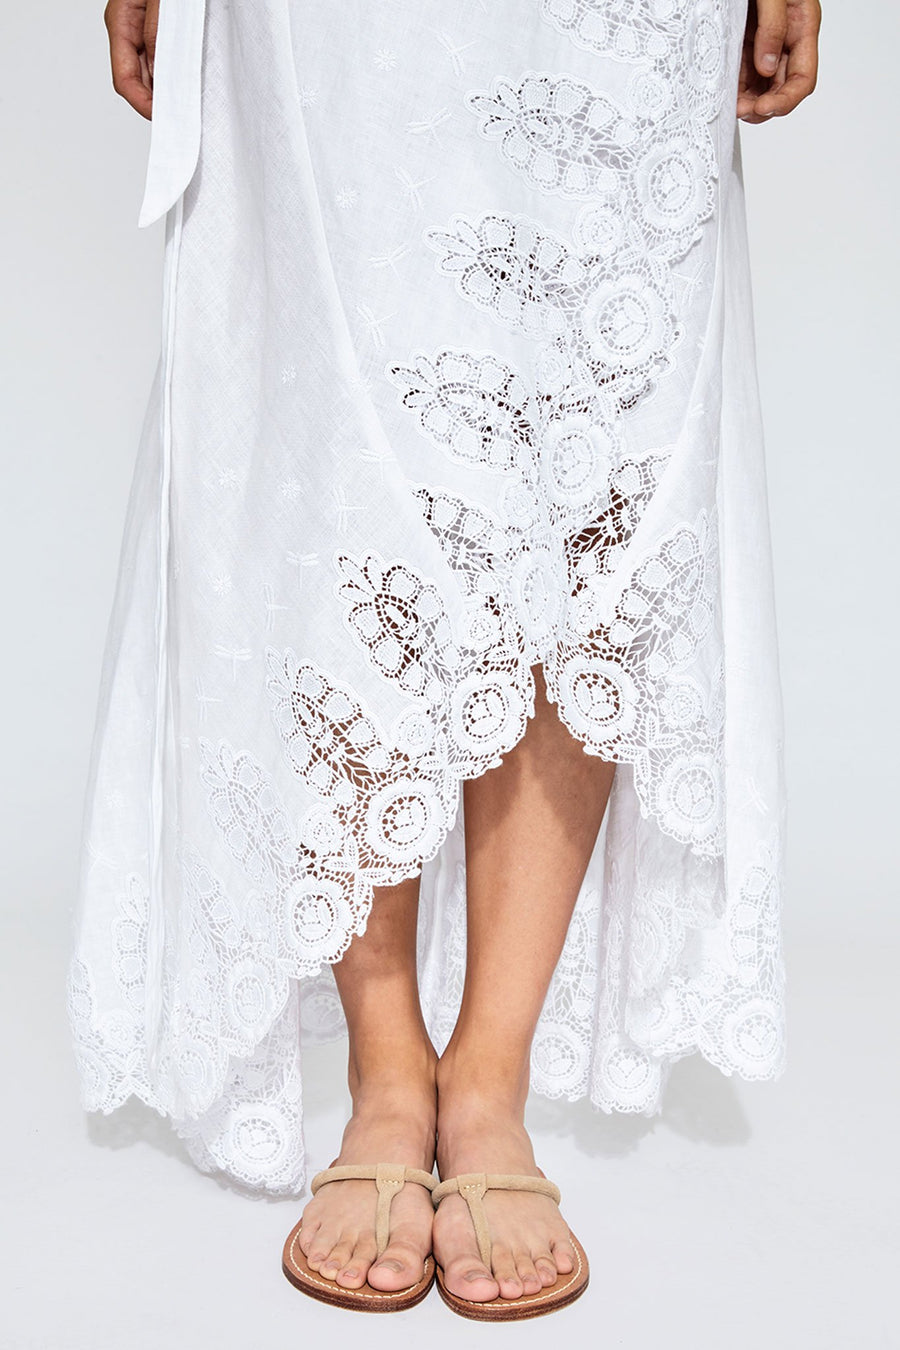 This is a detail photo of the front of a white linen and lace wrap skirt that splits in the front. The lace detailing shows flowers and dragonflies. She wears nude sandals.